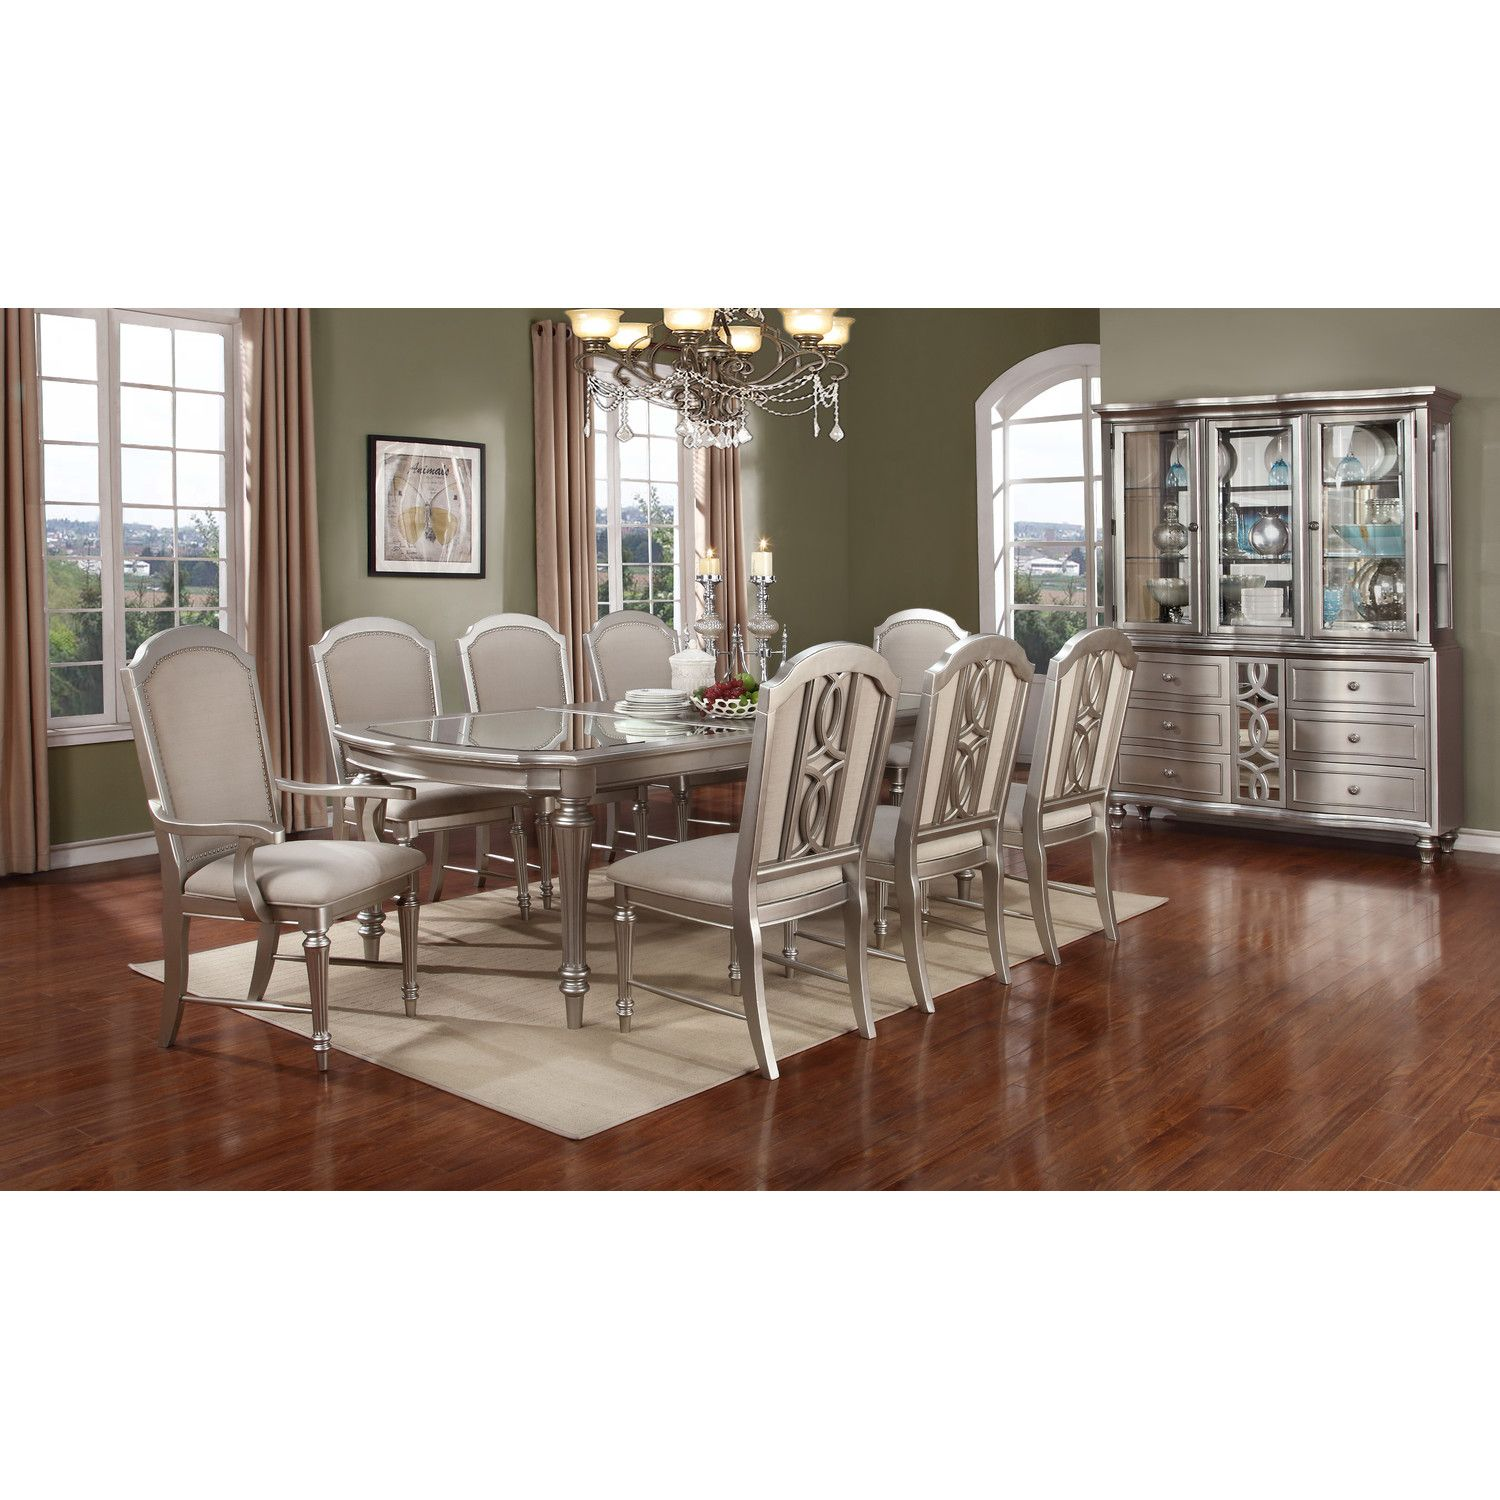 Avalon Furniture Regency Park 9 Piece Dining Set  Dream Dining Magnificent 9 Piece Dining Room Inspiration Design